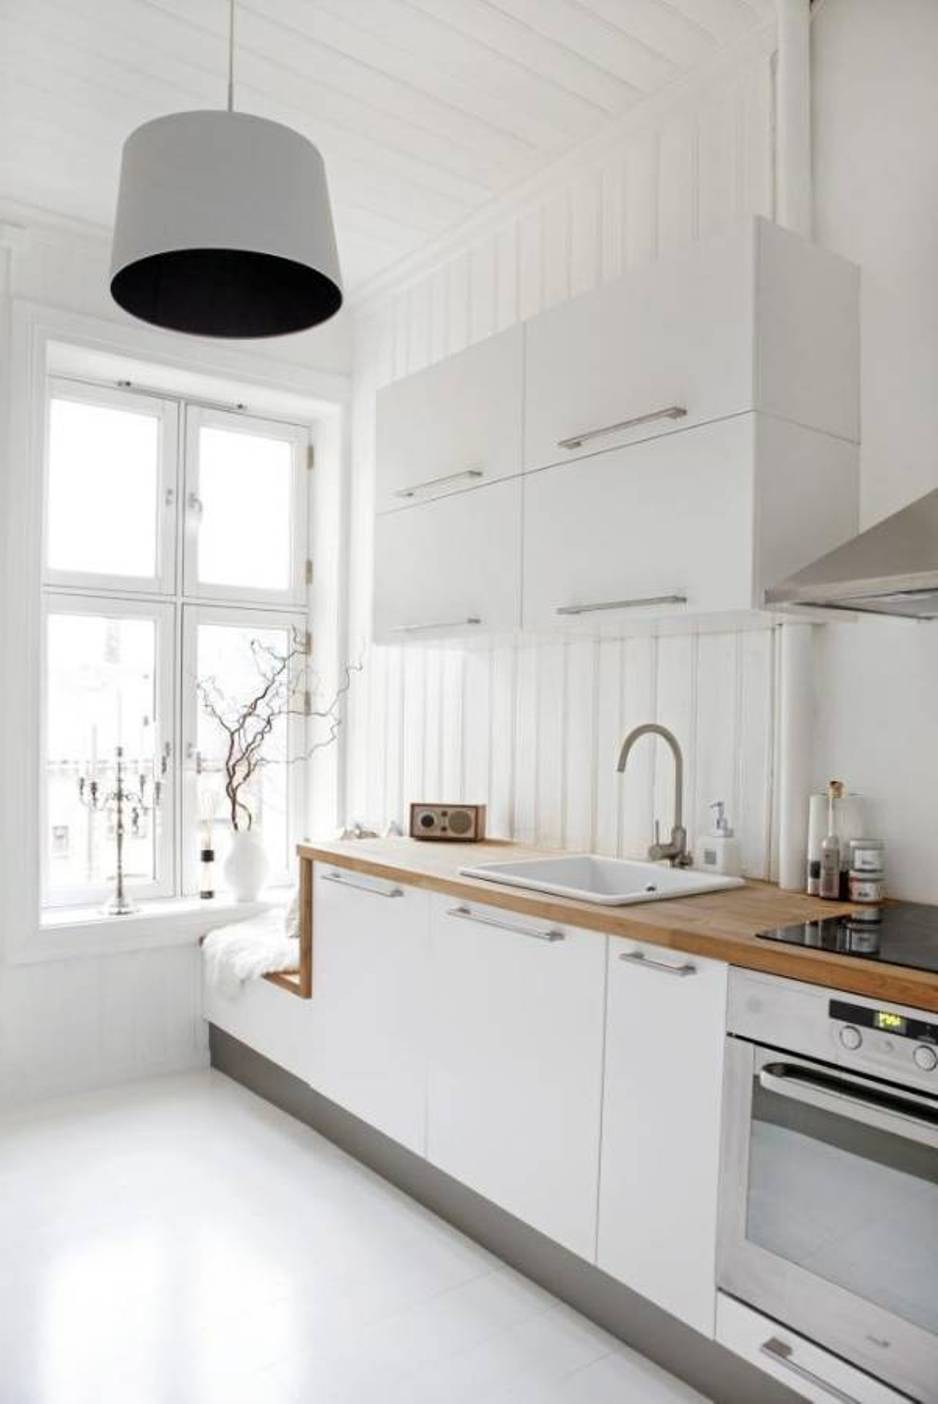 10 Amazing Scandinavian Kitchen Interior Design Ideas  Minimalist Cabinets Home and Furniture